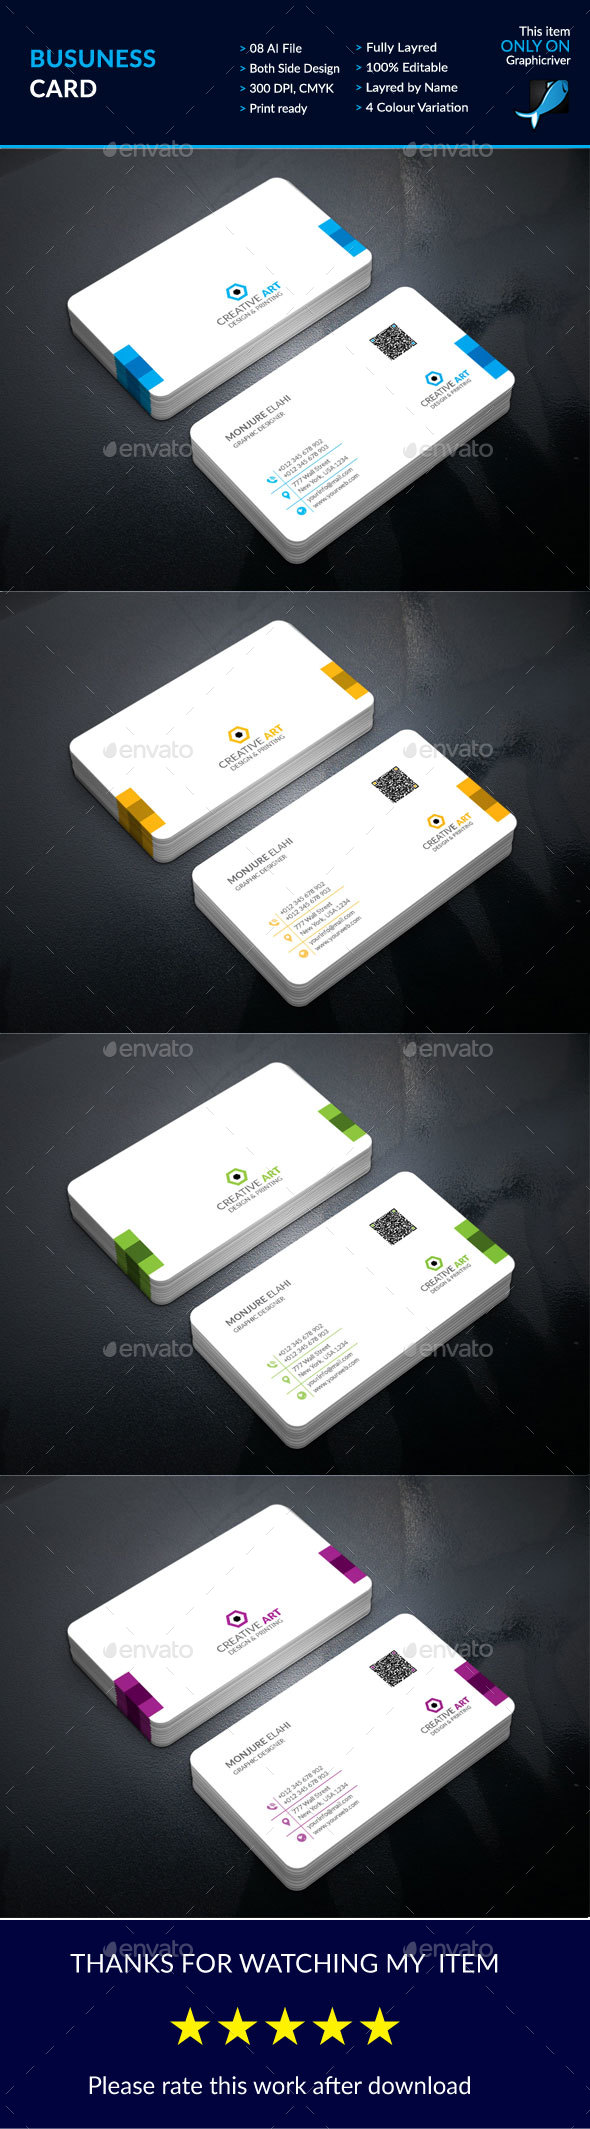 Corporate Business Card Design Template Business Cards Print - Business card print template illustrator